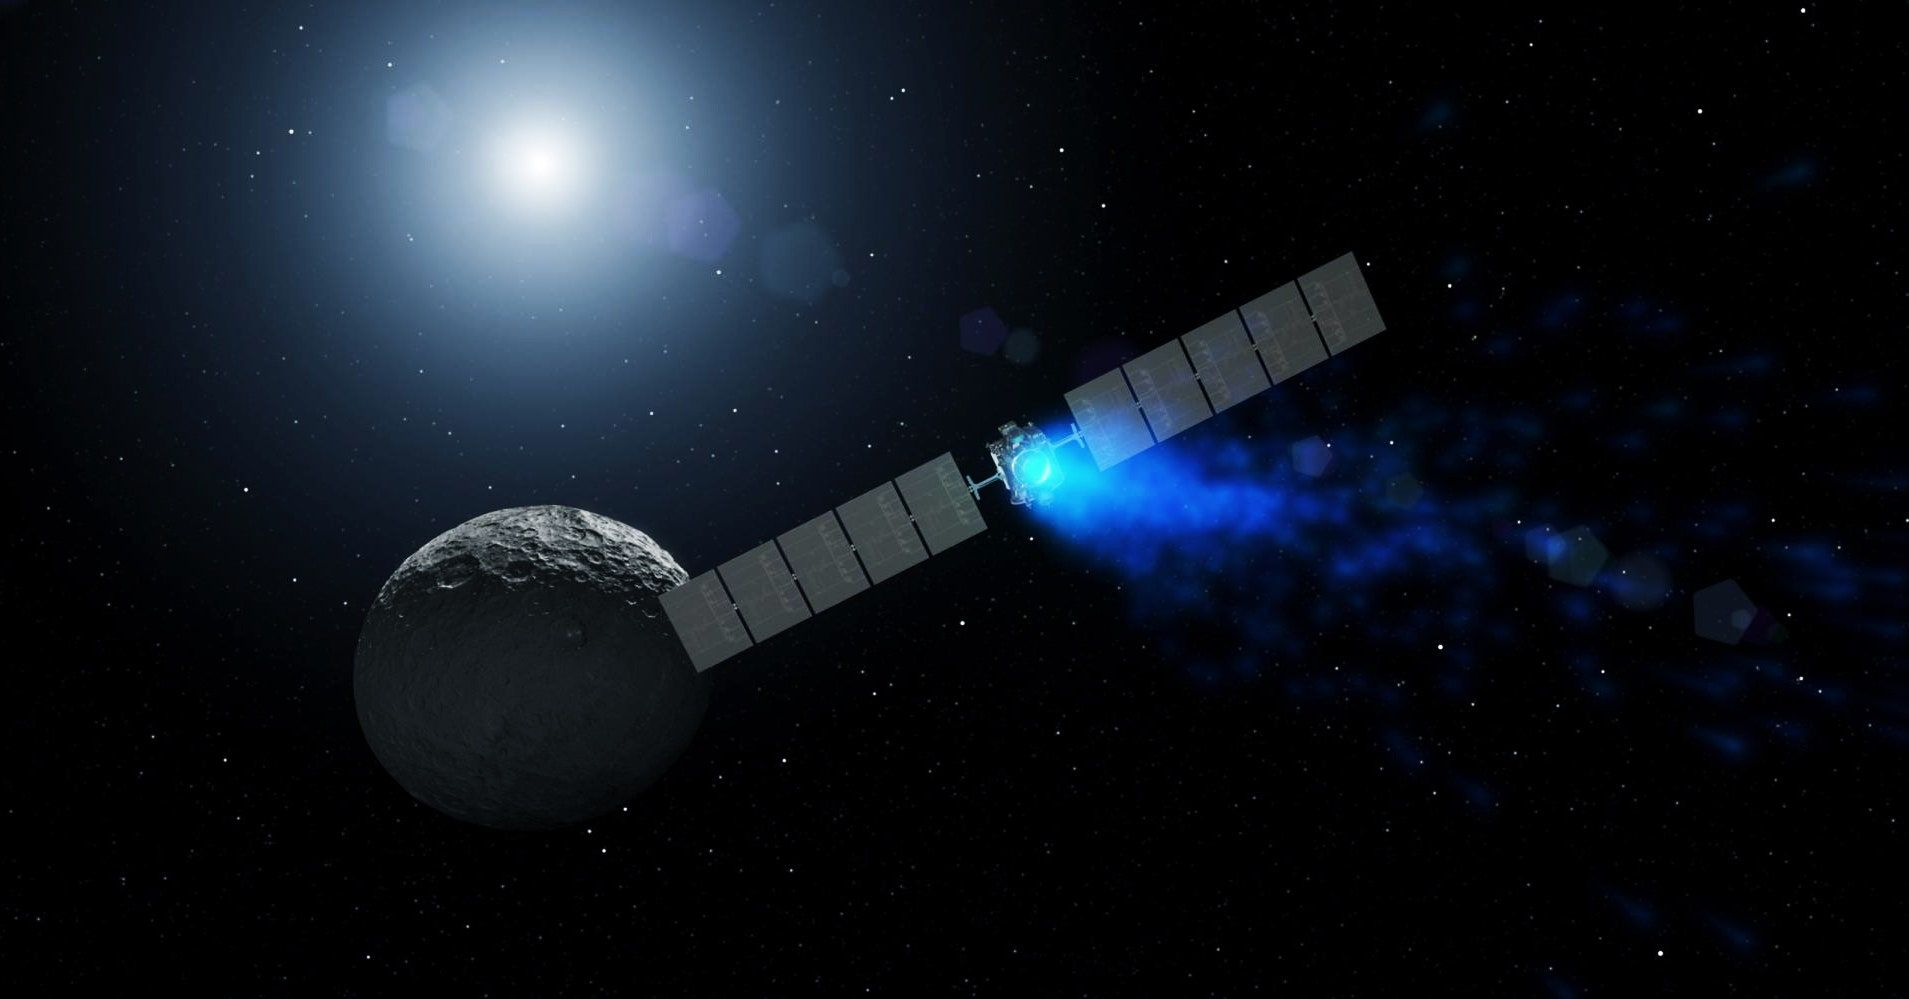 Catching Up With Dawn, the Massive Spacecraft Exploring the Asteroid Belt